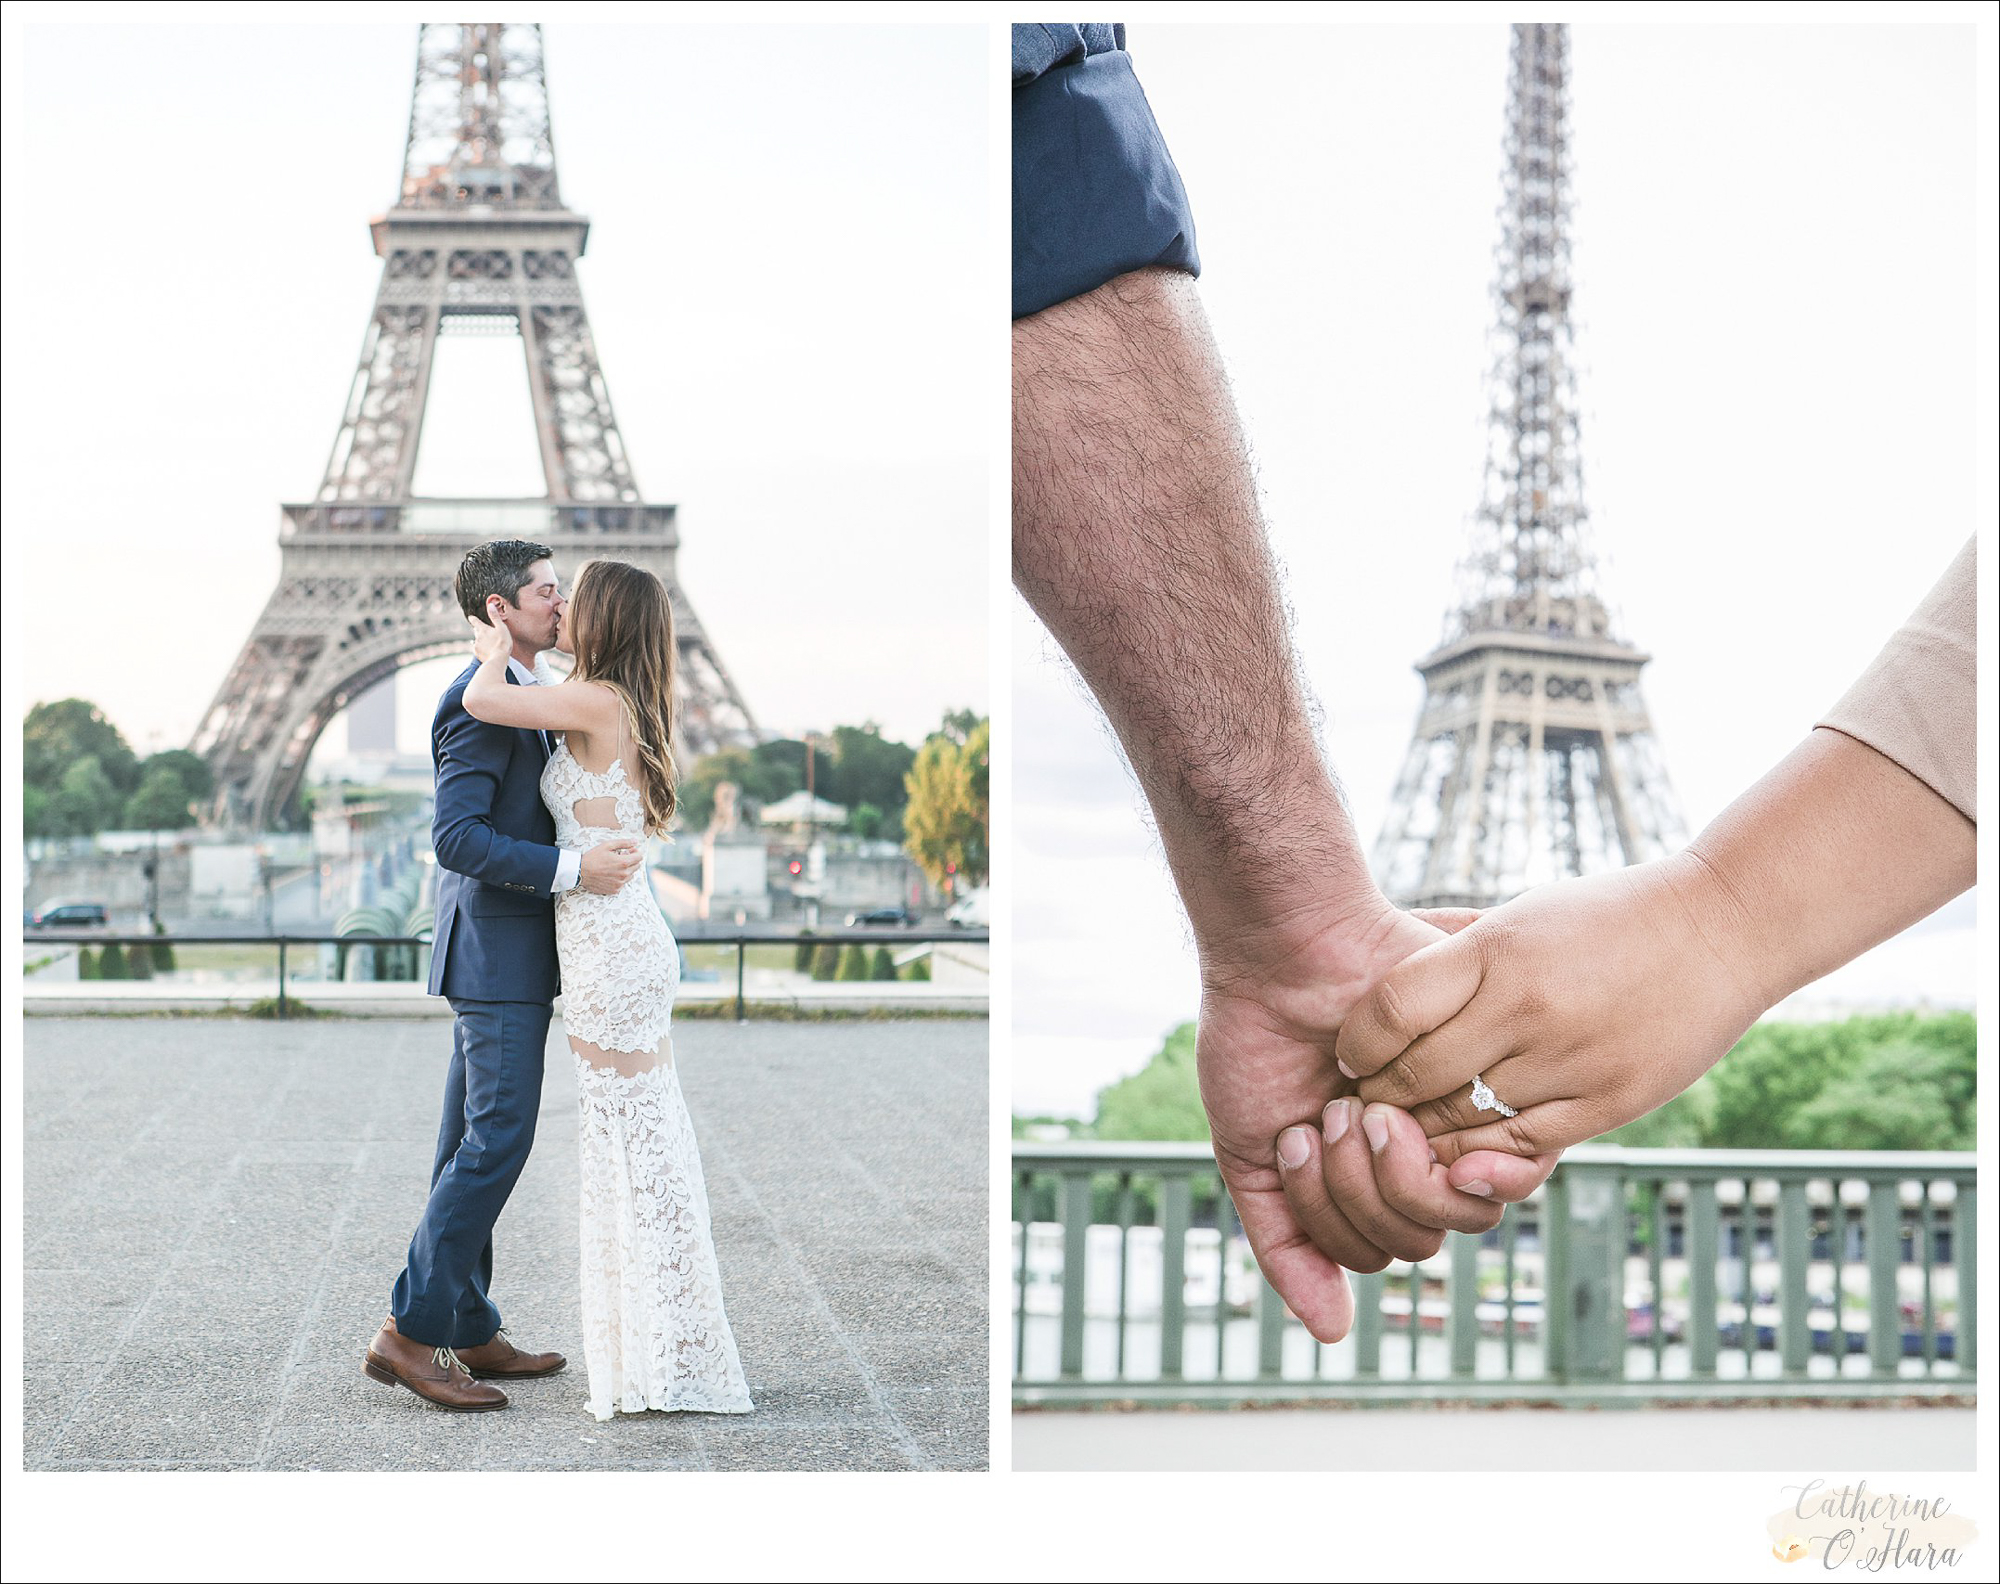 surprise proposal engagement photographer paris france-35.jpg